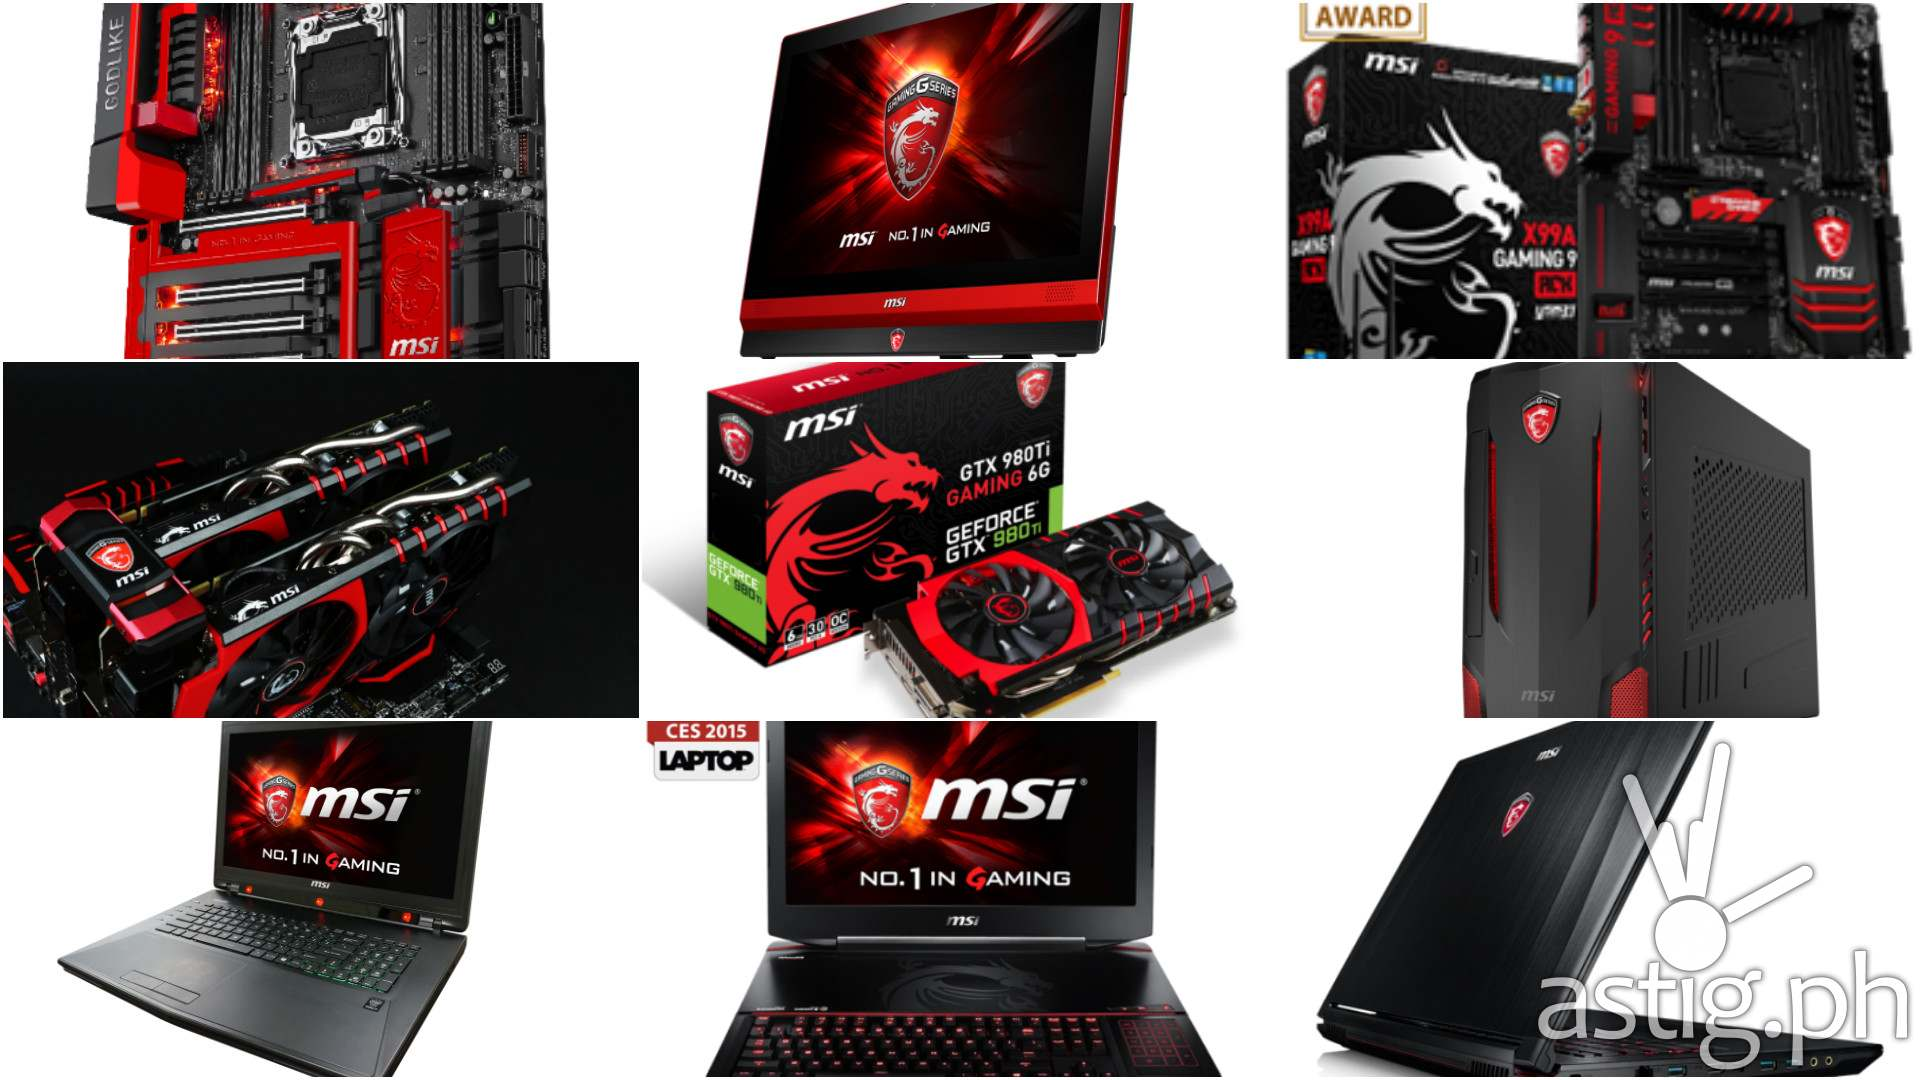 MSI Gaming hardware